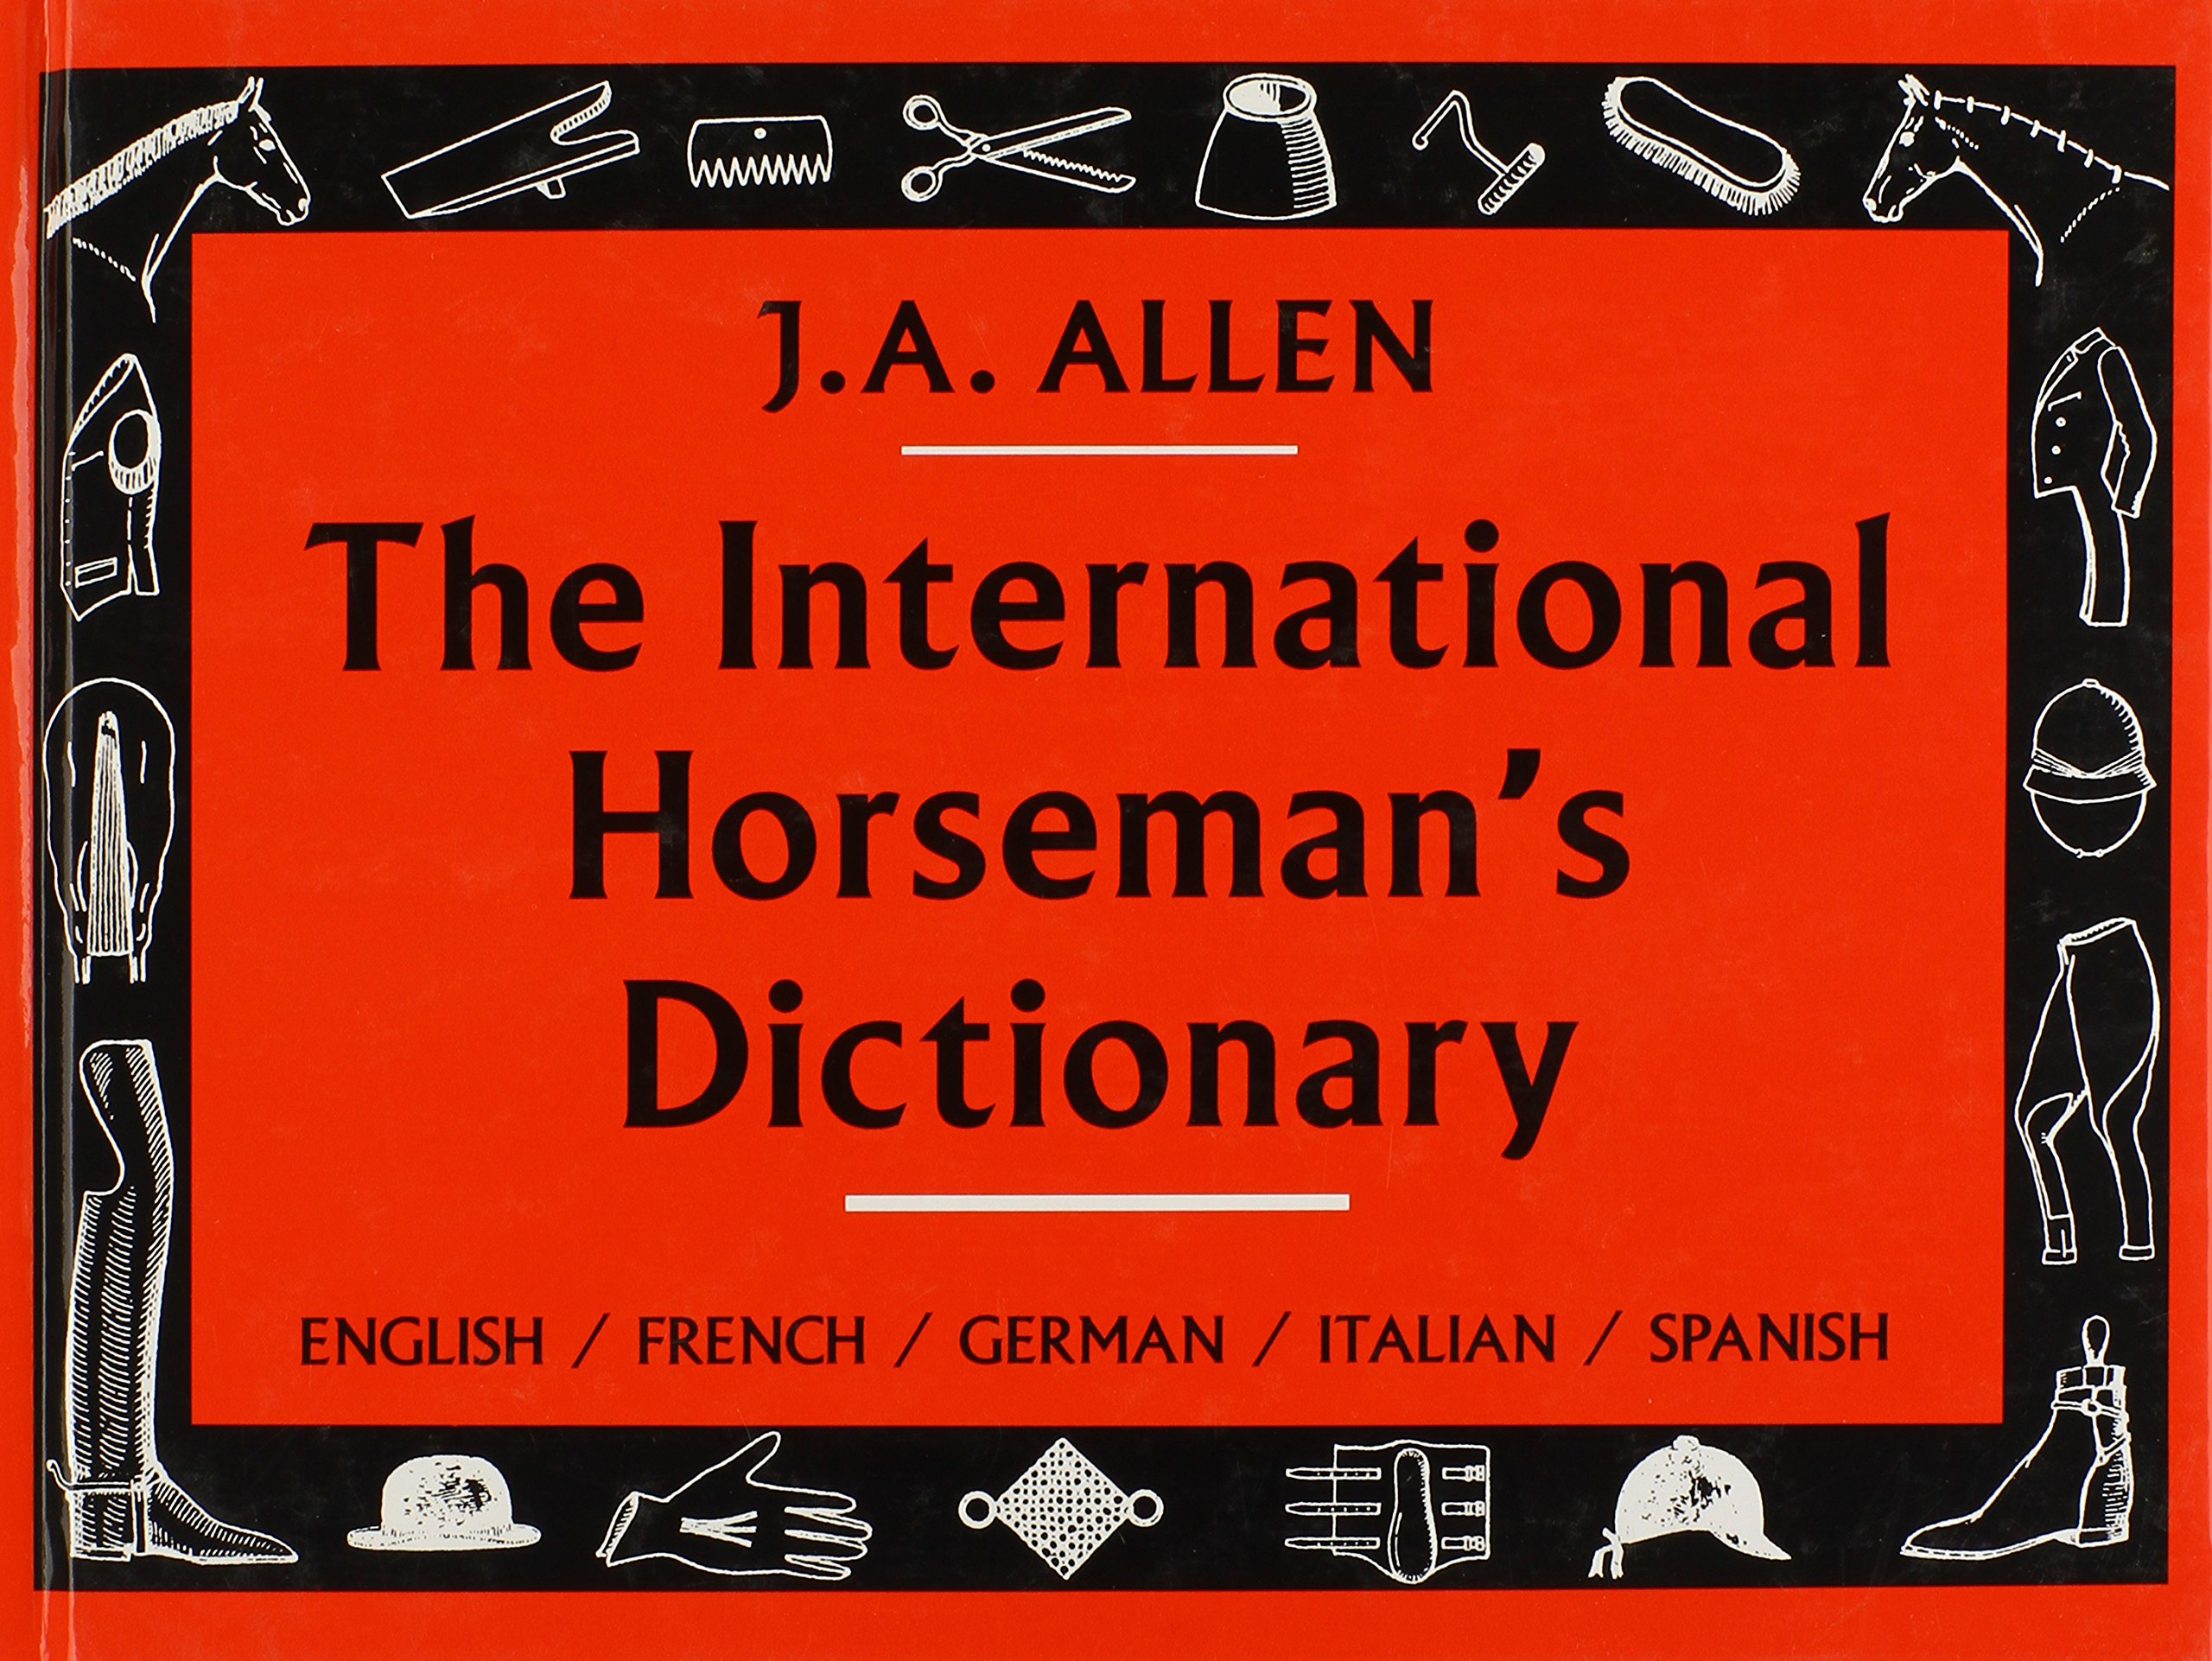 Image OfThe International Horseman's Dictionary: English, French, German, Italian, Spanish